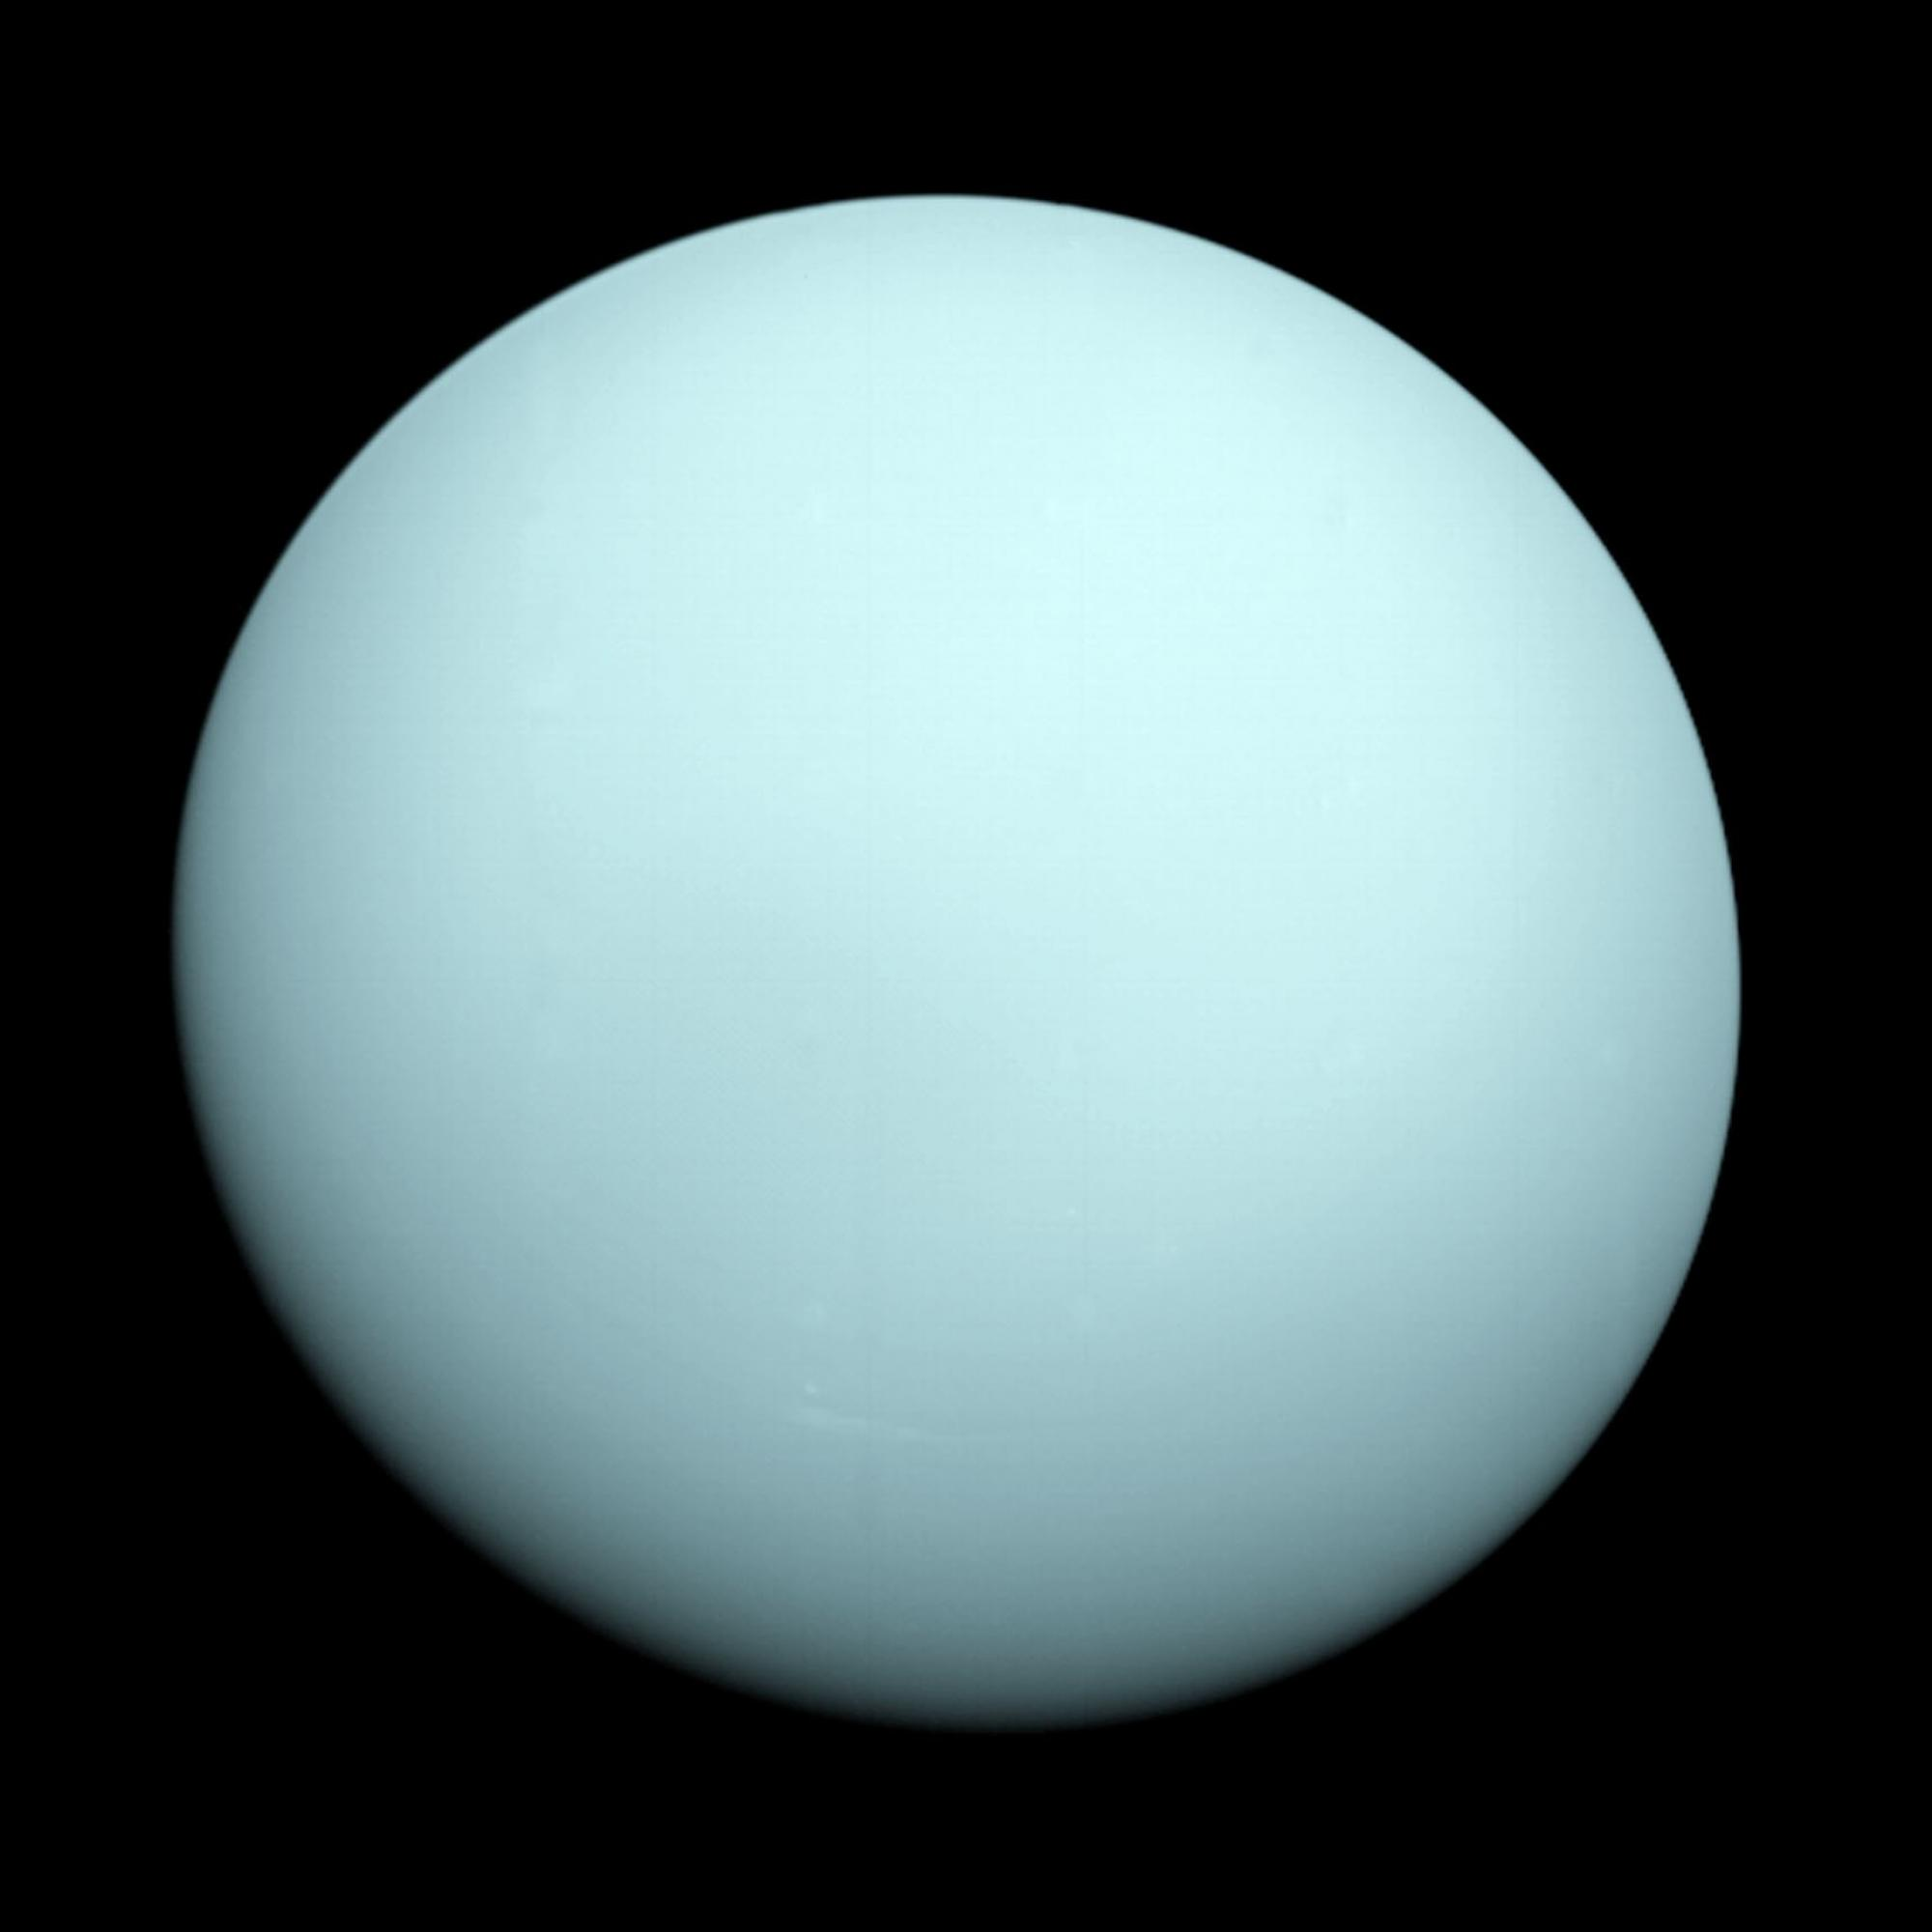 Uranus as photographed by Voyager-2 in 1986.